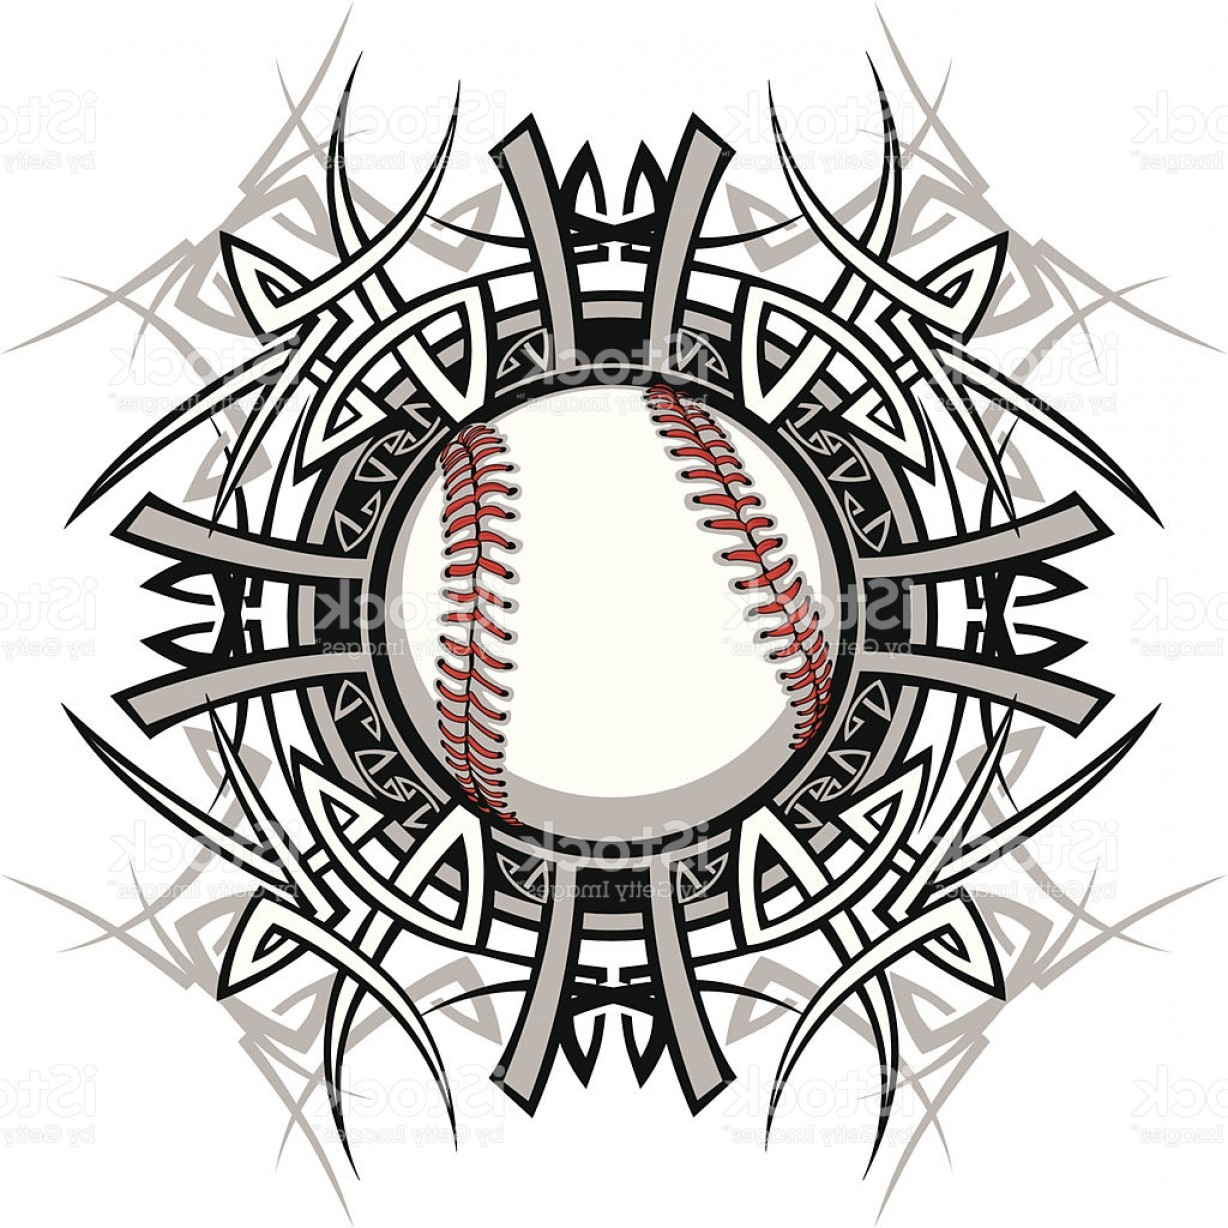 Softball Laces Vector Art B W: Baseball Softball Tribal Graphic Image Gm